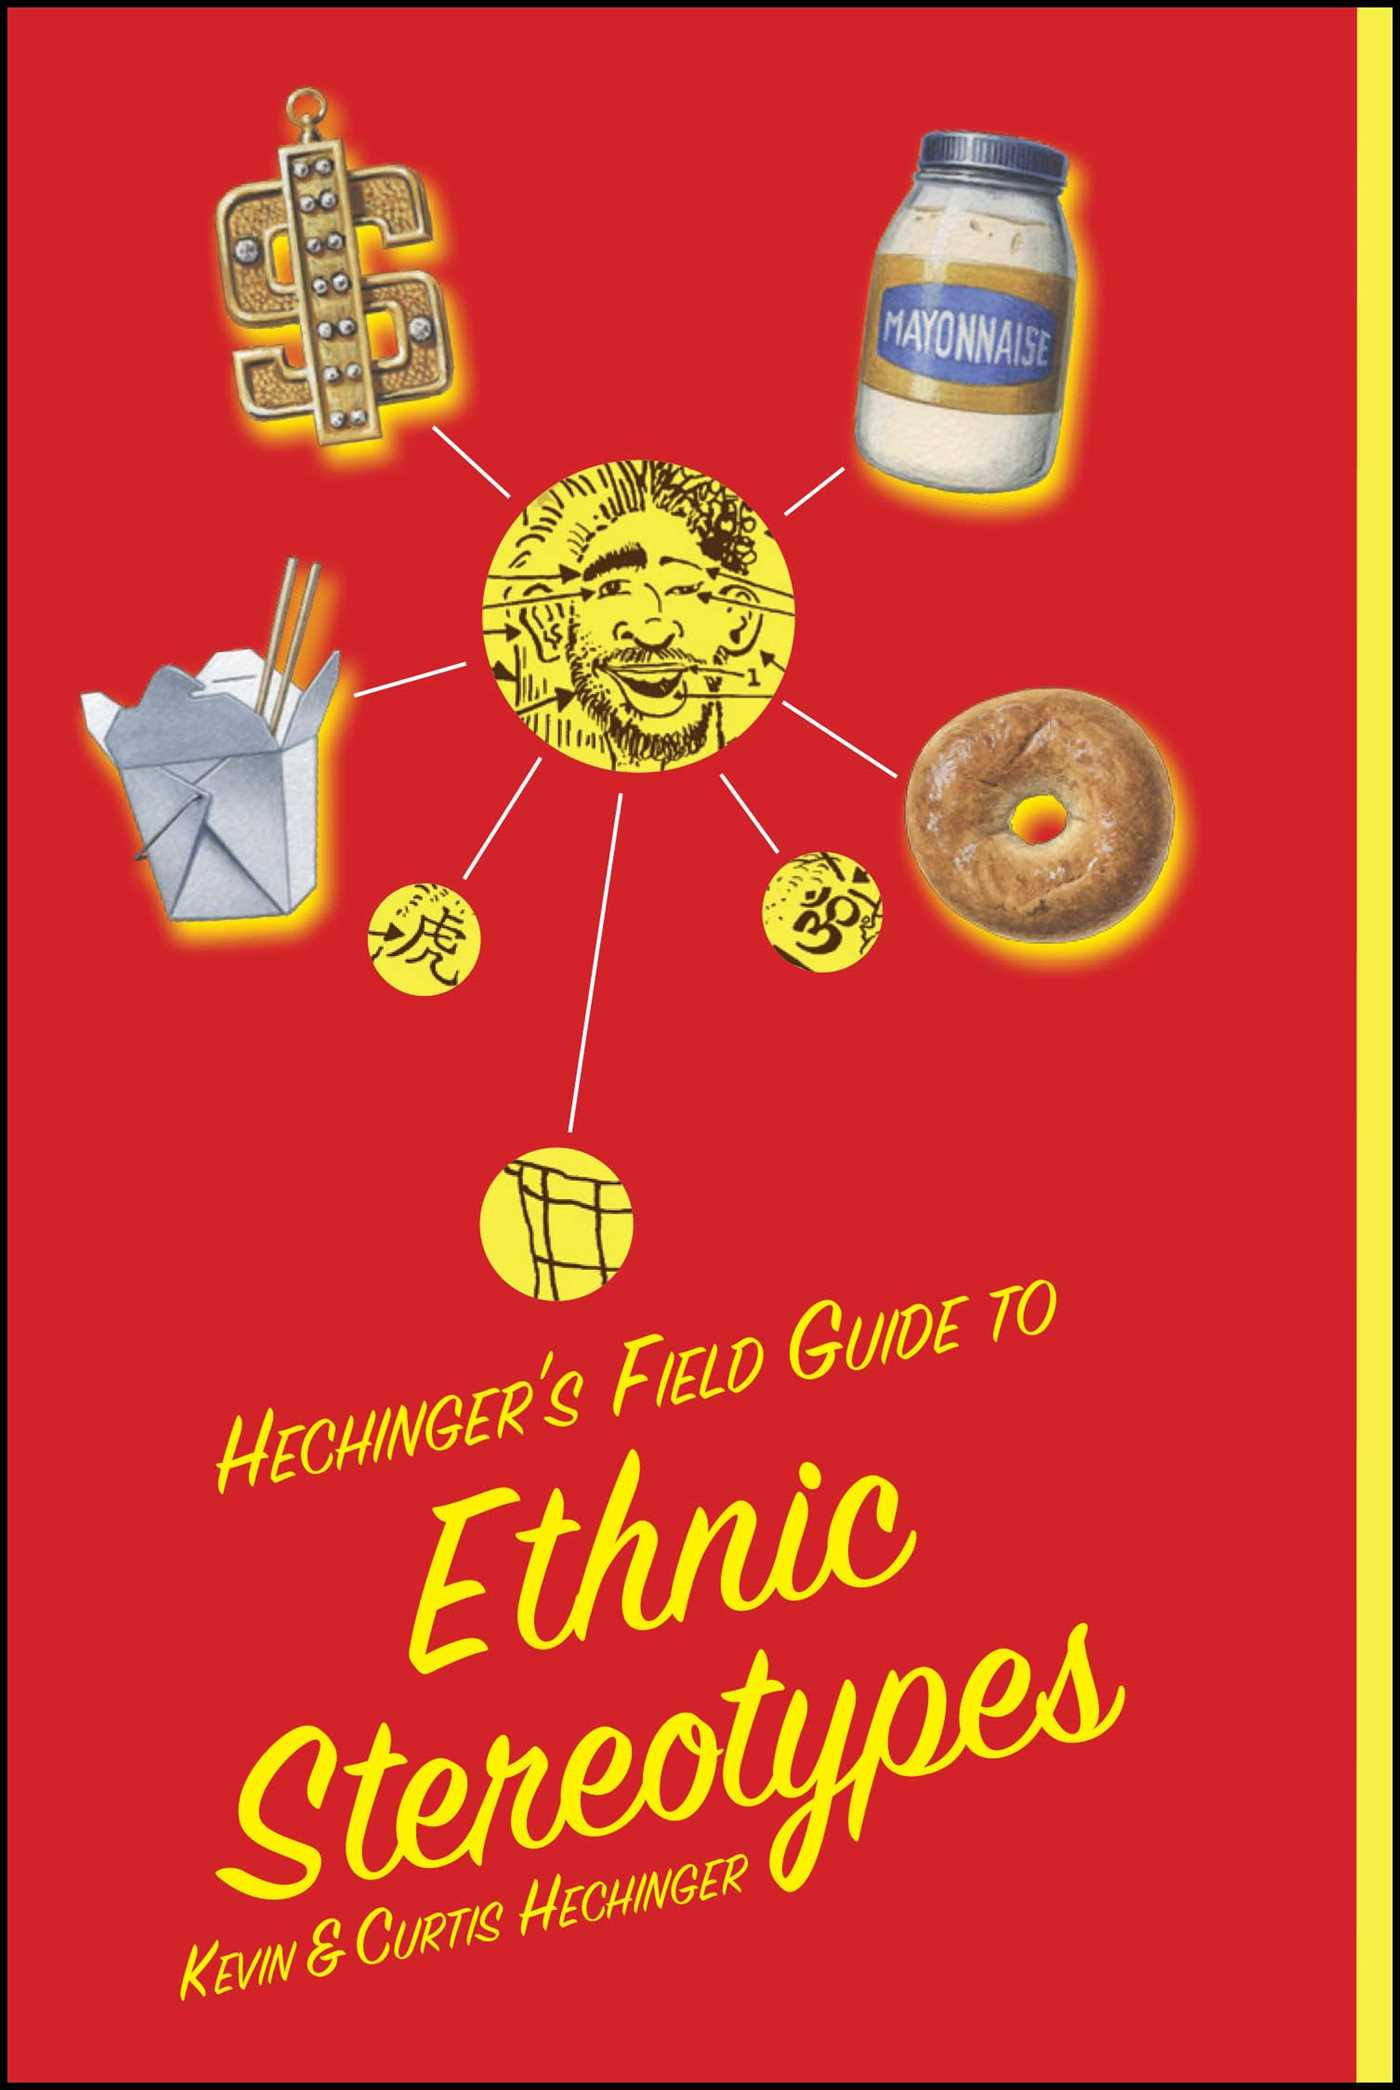 Hechingers field guide to ethnic stereotypes 9781416577829 hr